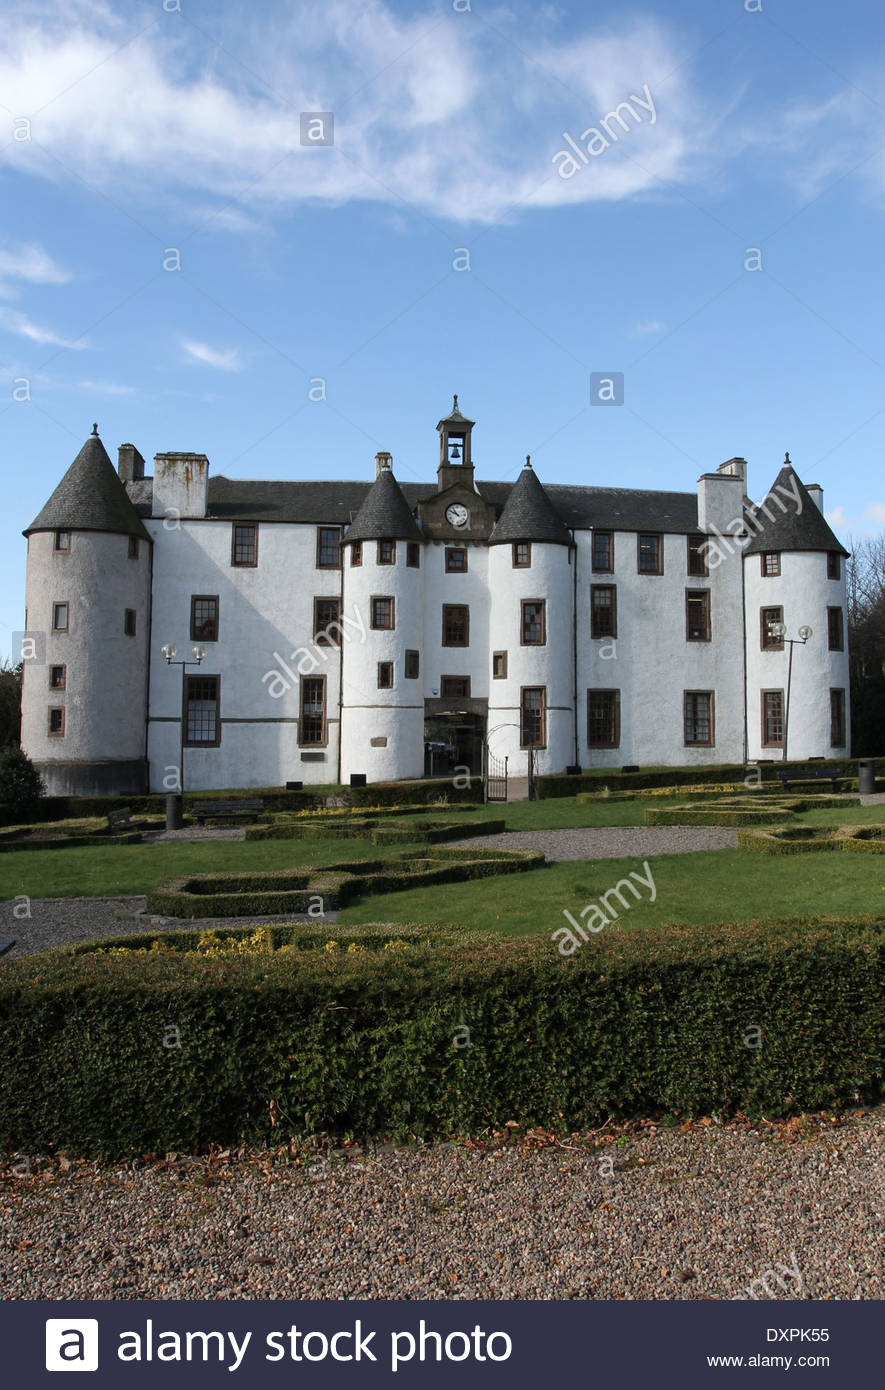 exterior of Dudhope Castle Dundee Scotland  March 2014 - Stock Image